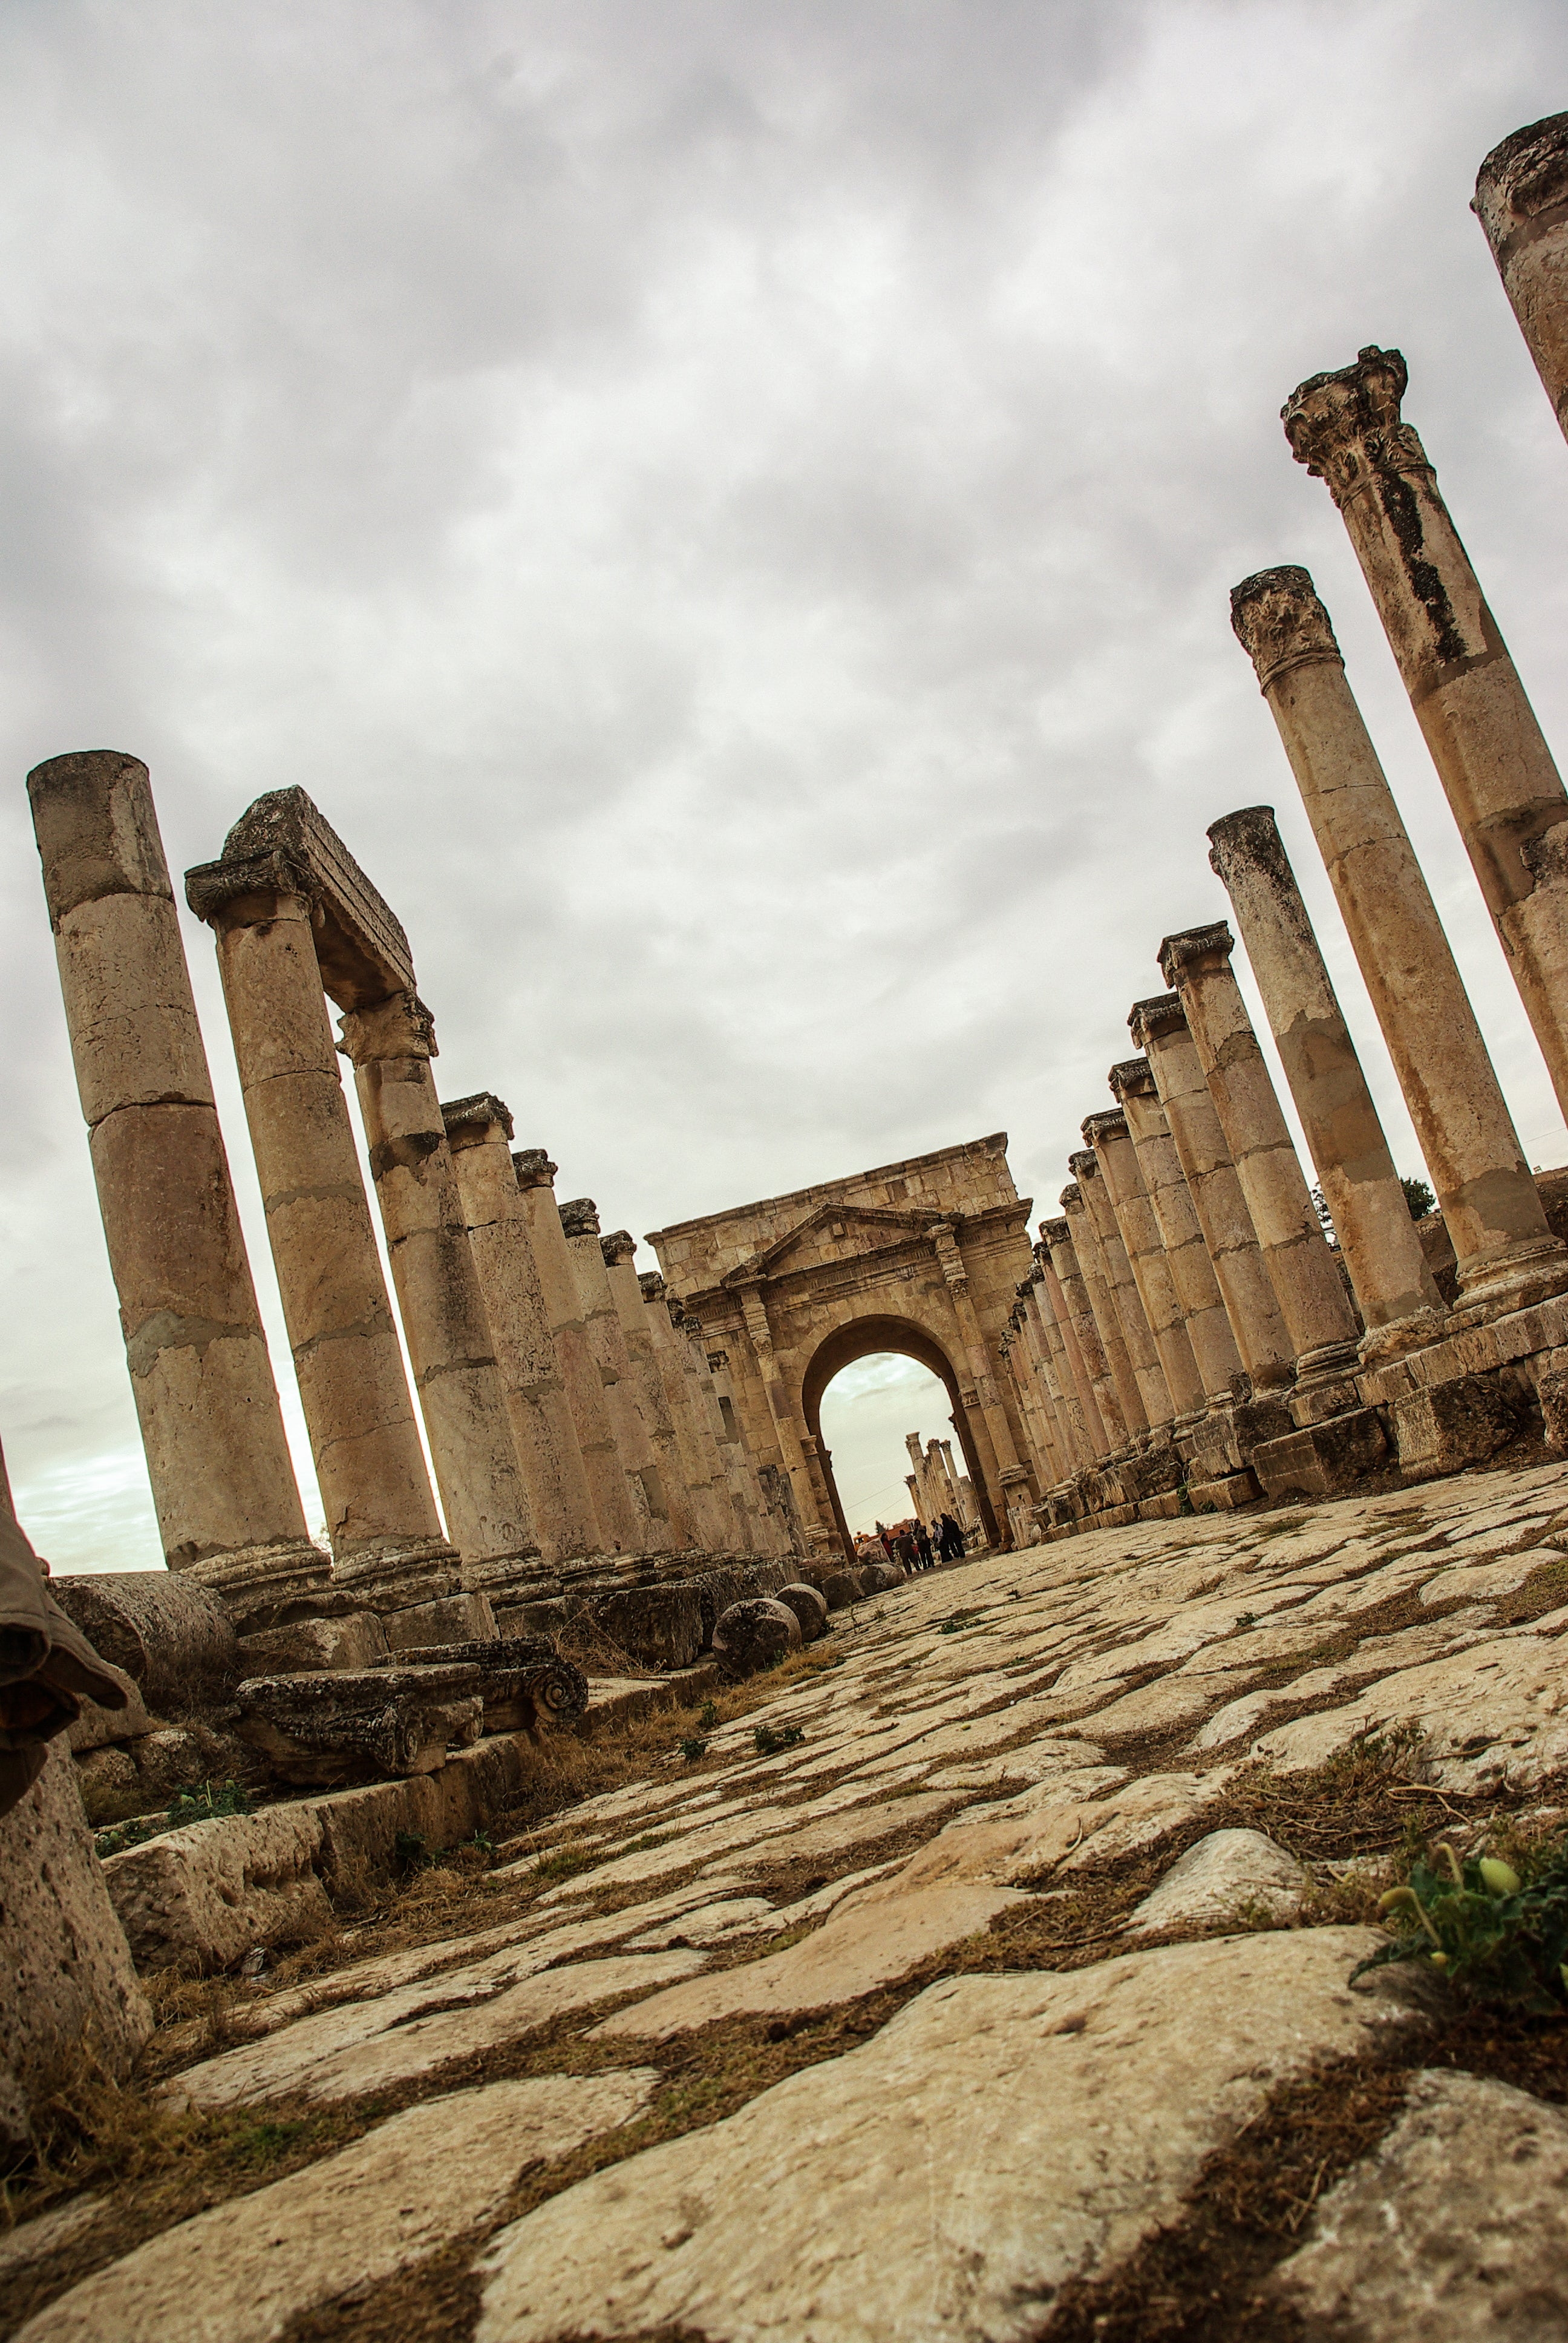 Pared en Jerash